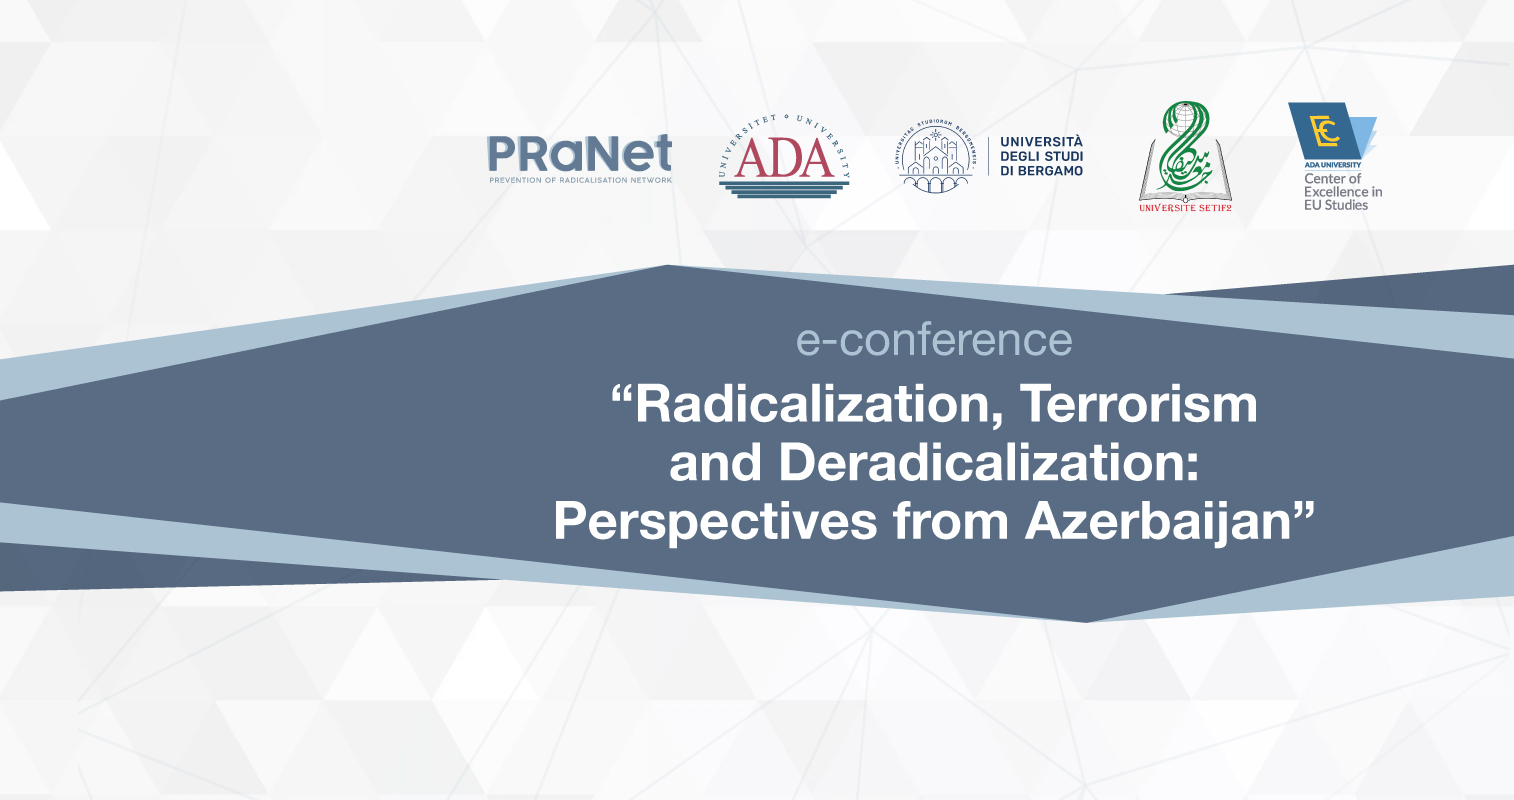 E-Conference on Radicalization, Terrorism and Deradicalization: Perspective from Azerbaijan has been conducted on June 18, 2020